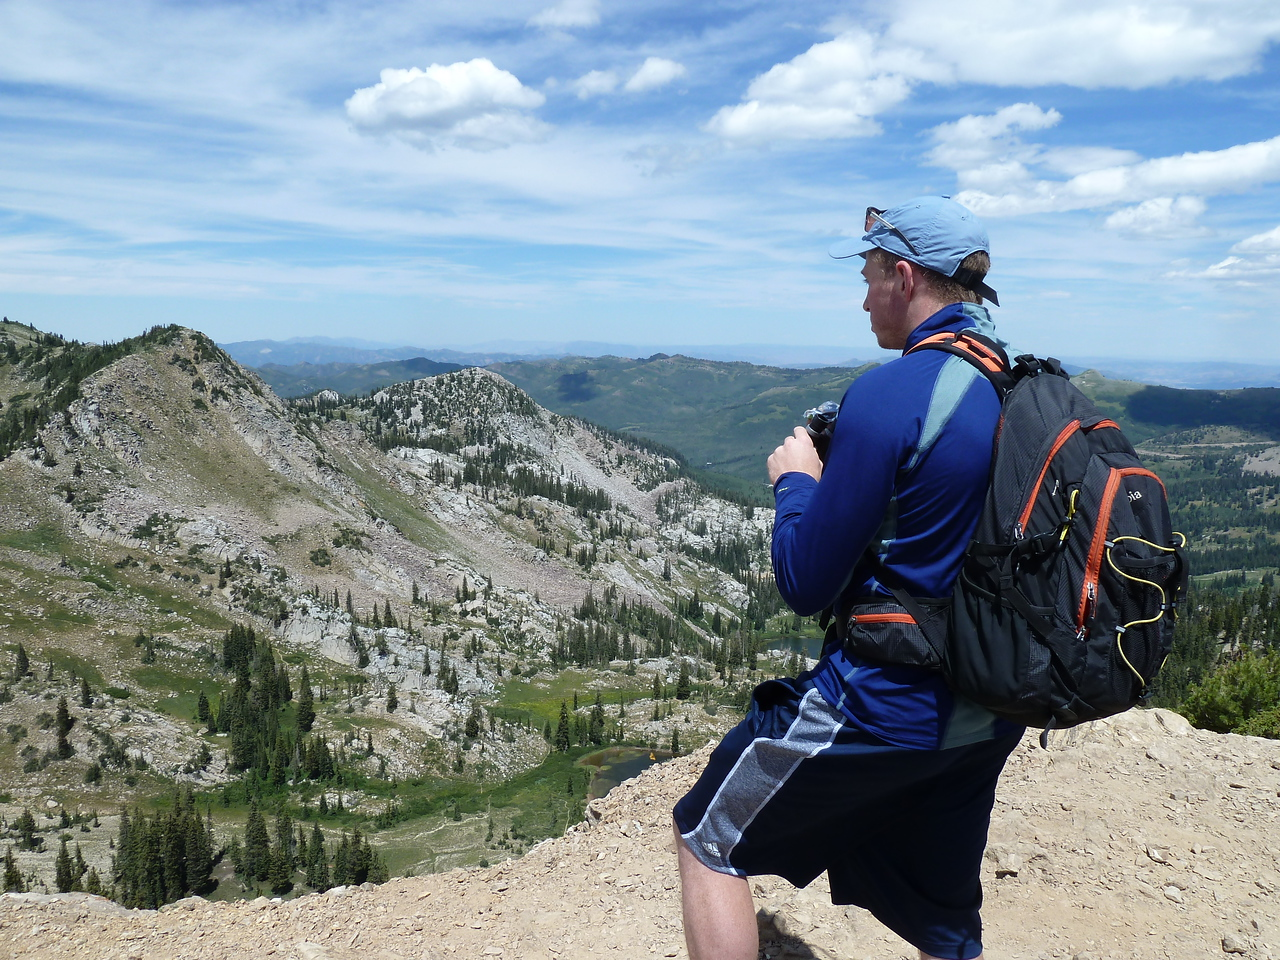 The summit!  Sunset Peak, one of our favorite spots in the Wasatch